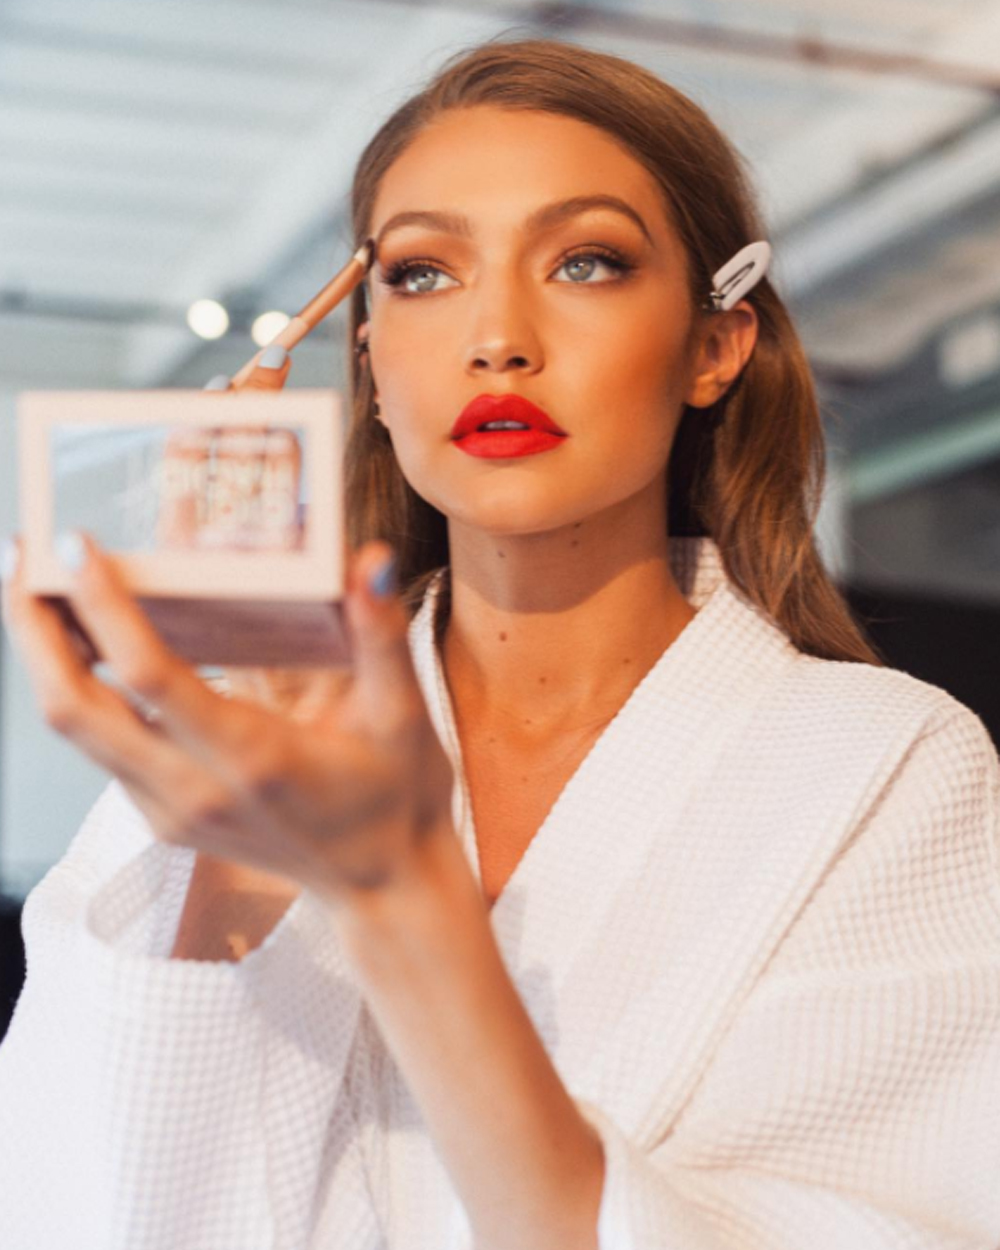 <p>Knowing which beauty products to use is one thing, but pronouncing them correctly is a completely different story.</p> <p>When it comes to those intimidating and hip foreign makeup labels like Chantecaille or Shu Uemura, how do you pronounce them without raising eyes at the Sephora counter. </p> <p>We've got you sorted with our pick of 20 hard-to-say beauty brands, how to say them andour favourite product from each, just so you're really in the know.</p> <p>Click through to see our guide so you'll never have to wonder how to say the name of your new go-to's ever again.<br /> <br /> </p>